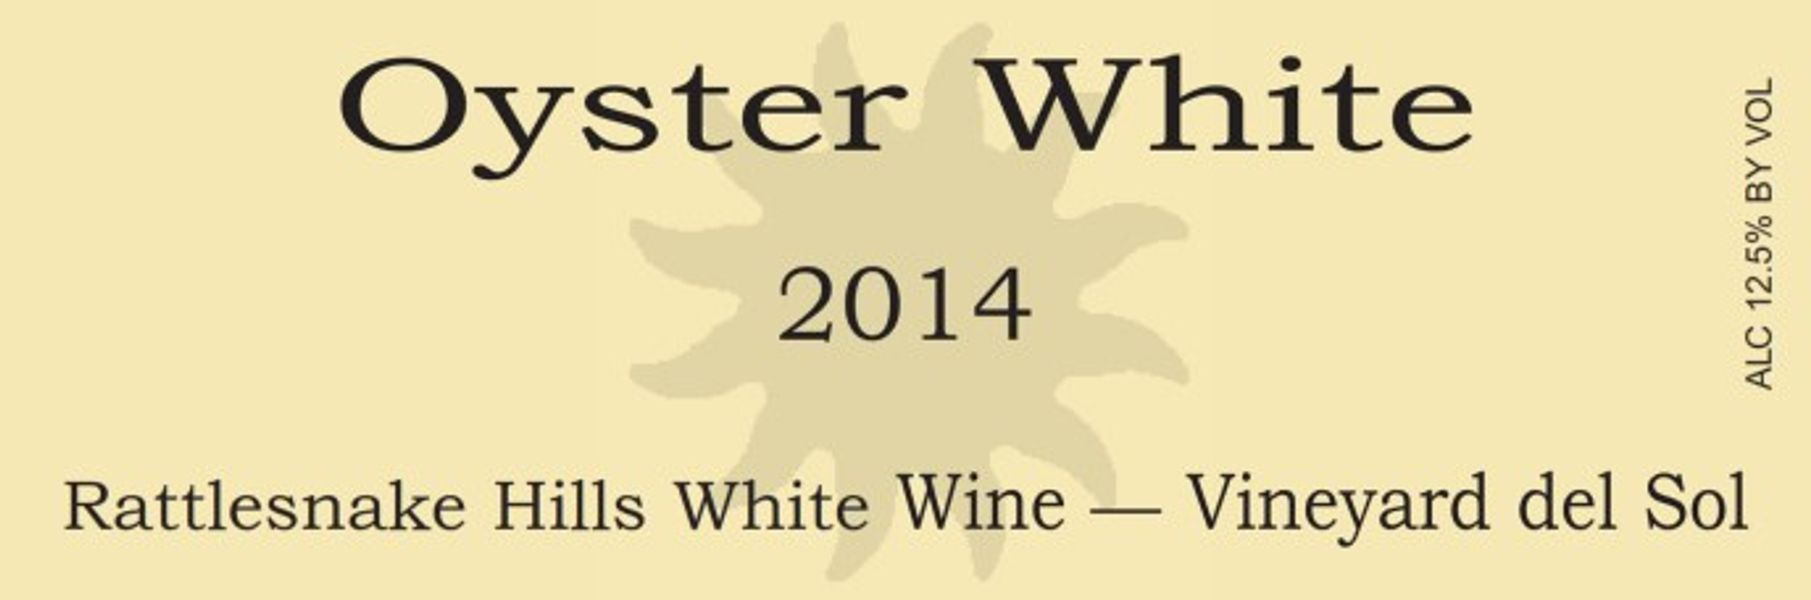 2014 Oyster White